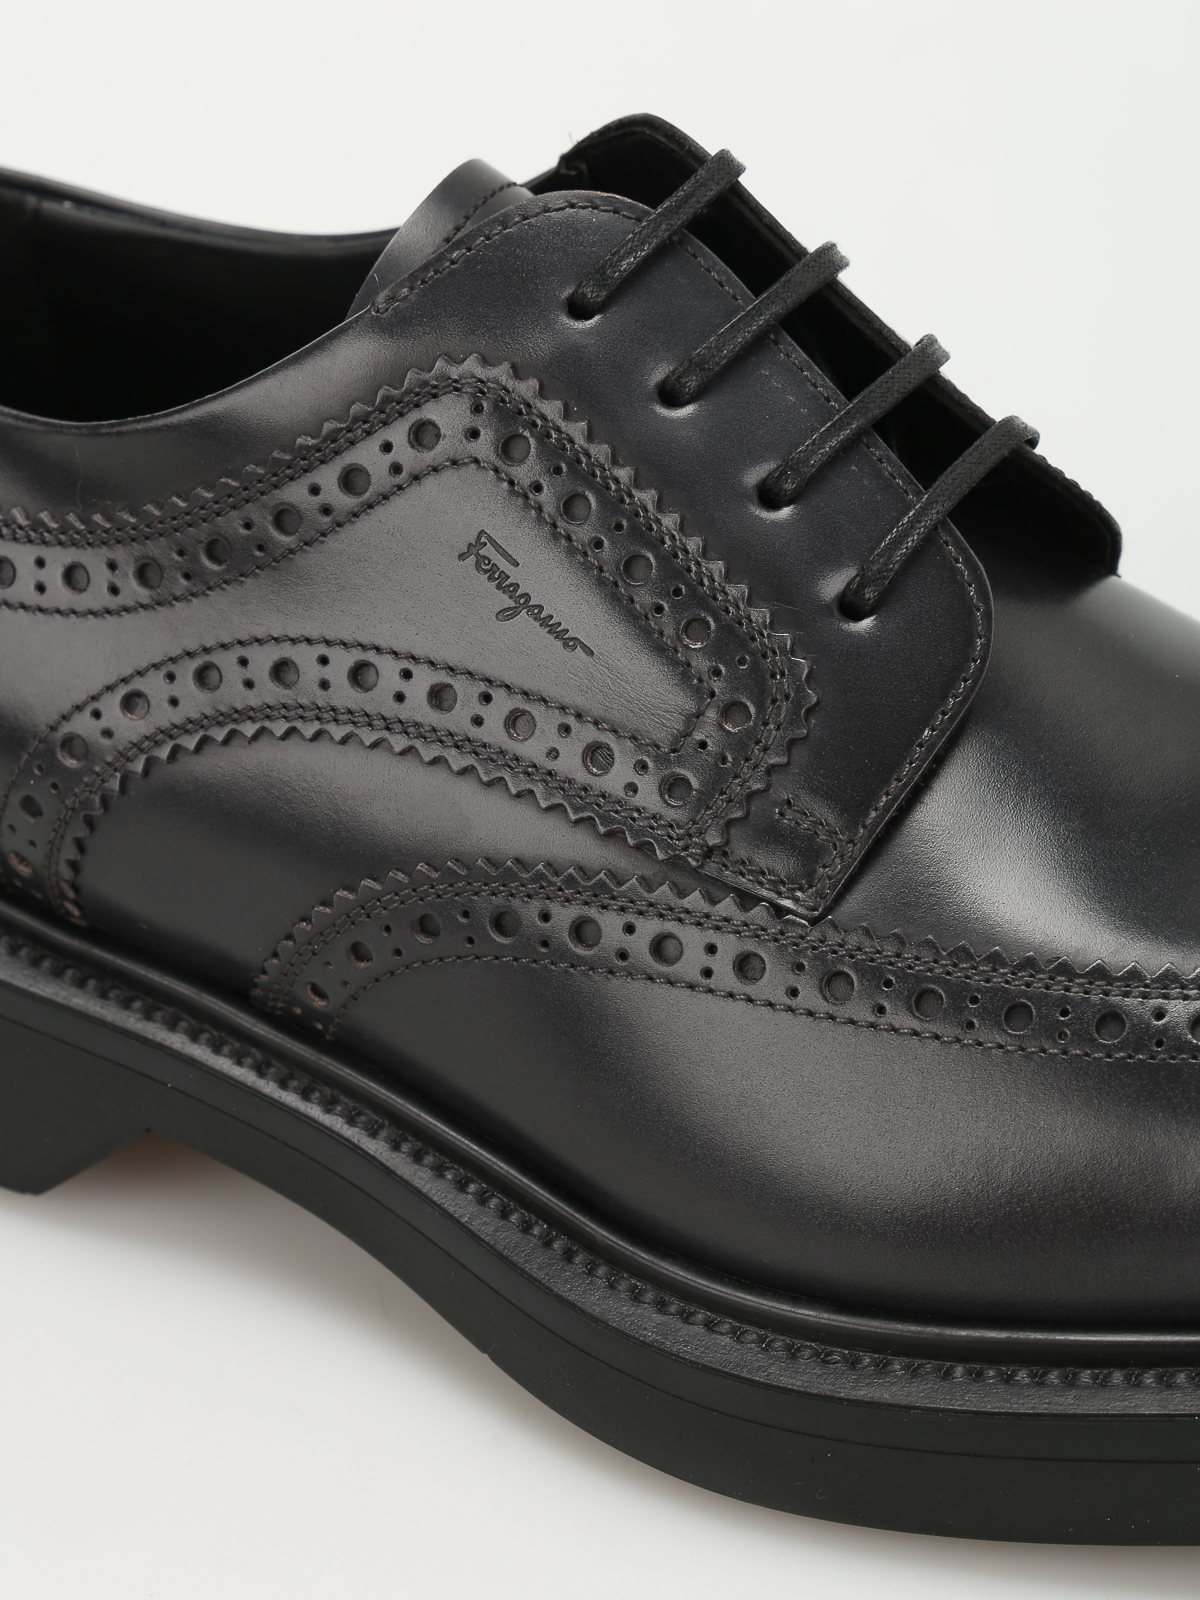 e1ac4fc30934 iKRIX SALVATORE FERRAGAMO: lace-ups shoes - Donegal brushed leather brogues